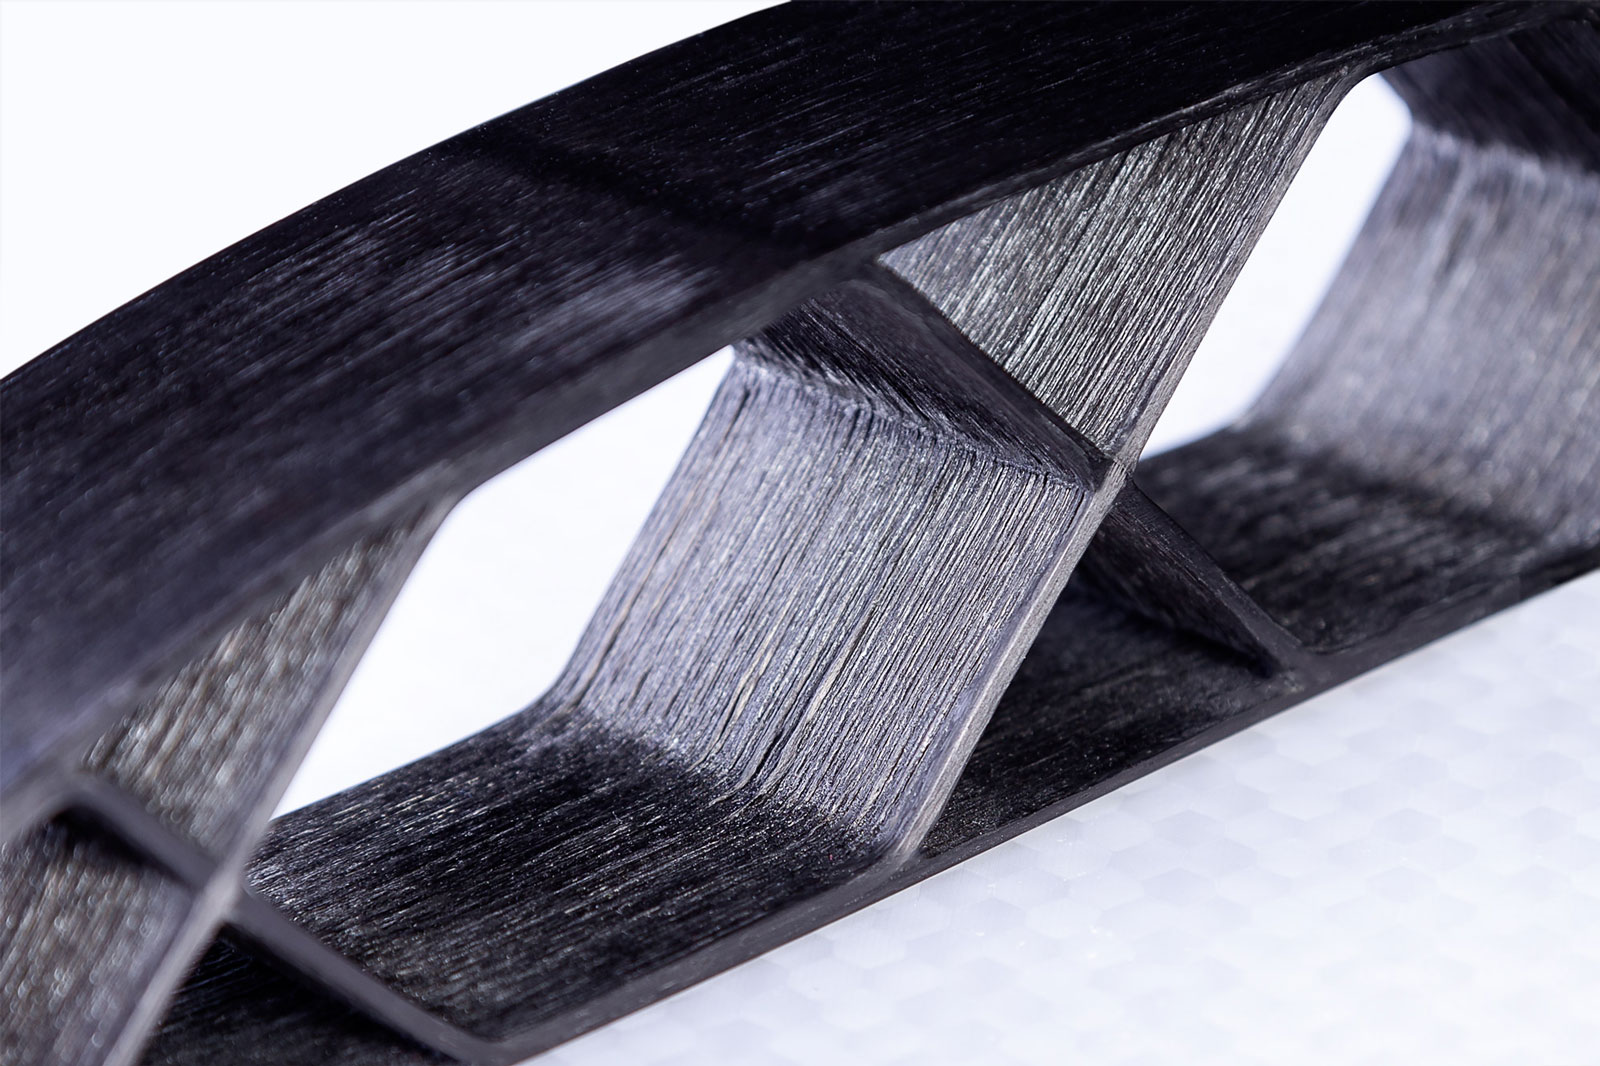 Closeup image of continuous carbon fiber airfoil part